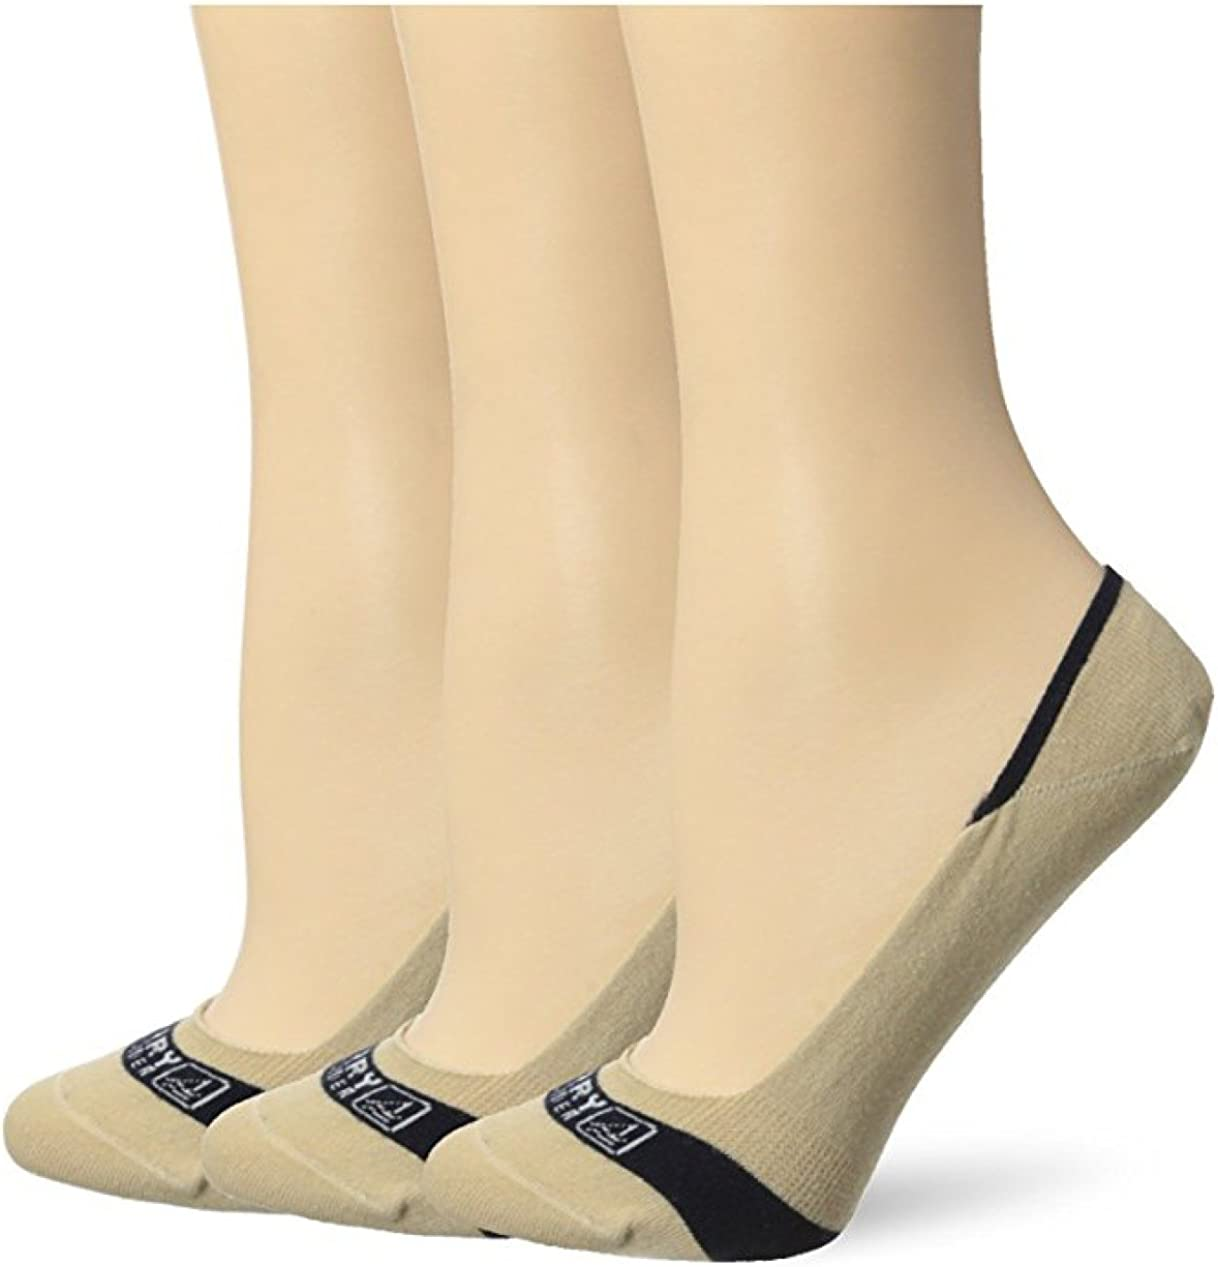 Sperry Women's Signature Invisible Liner Sock with a Helicase sock ring